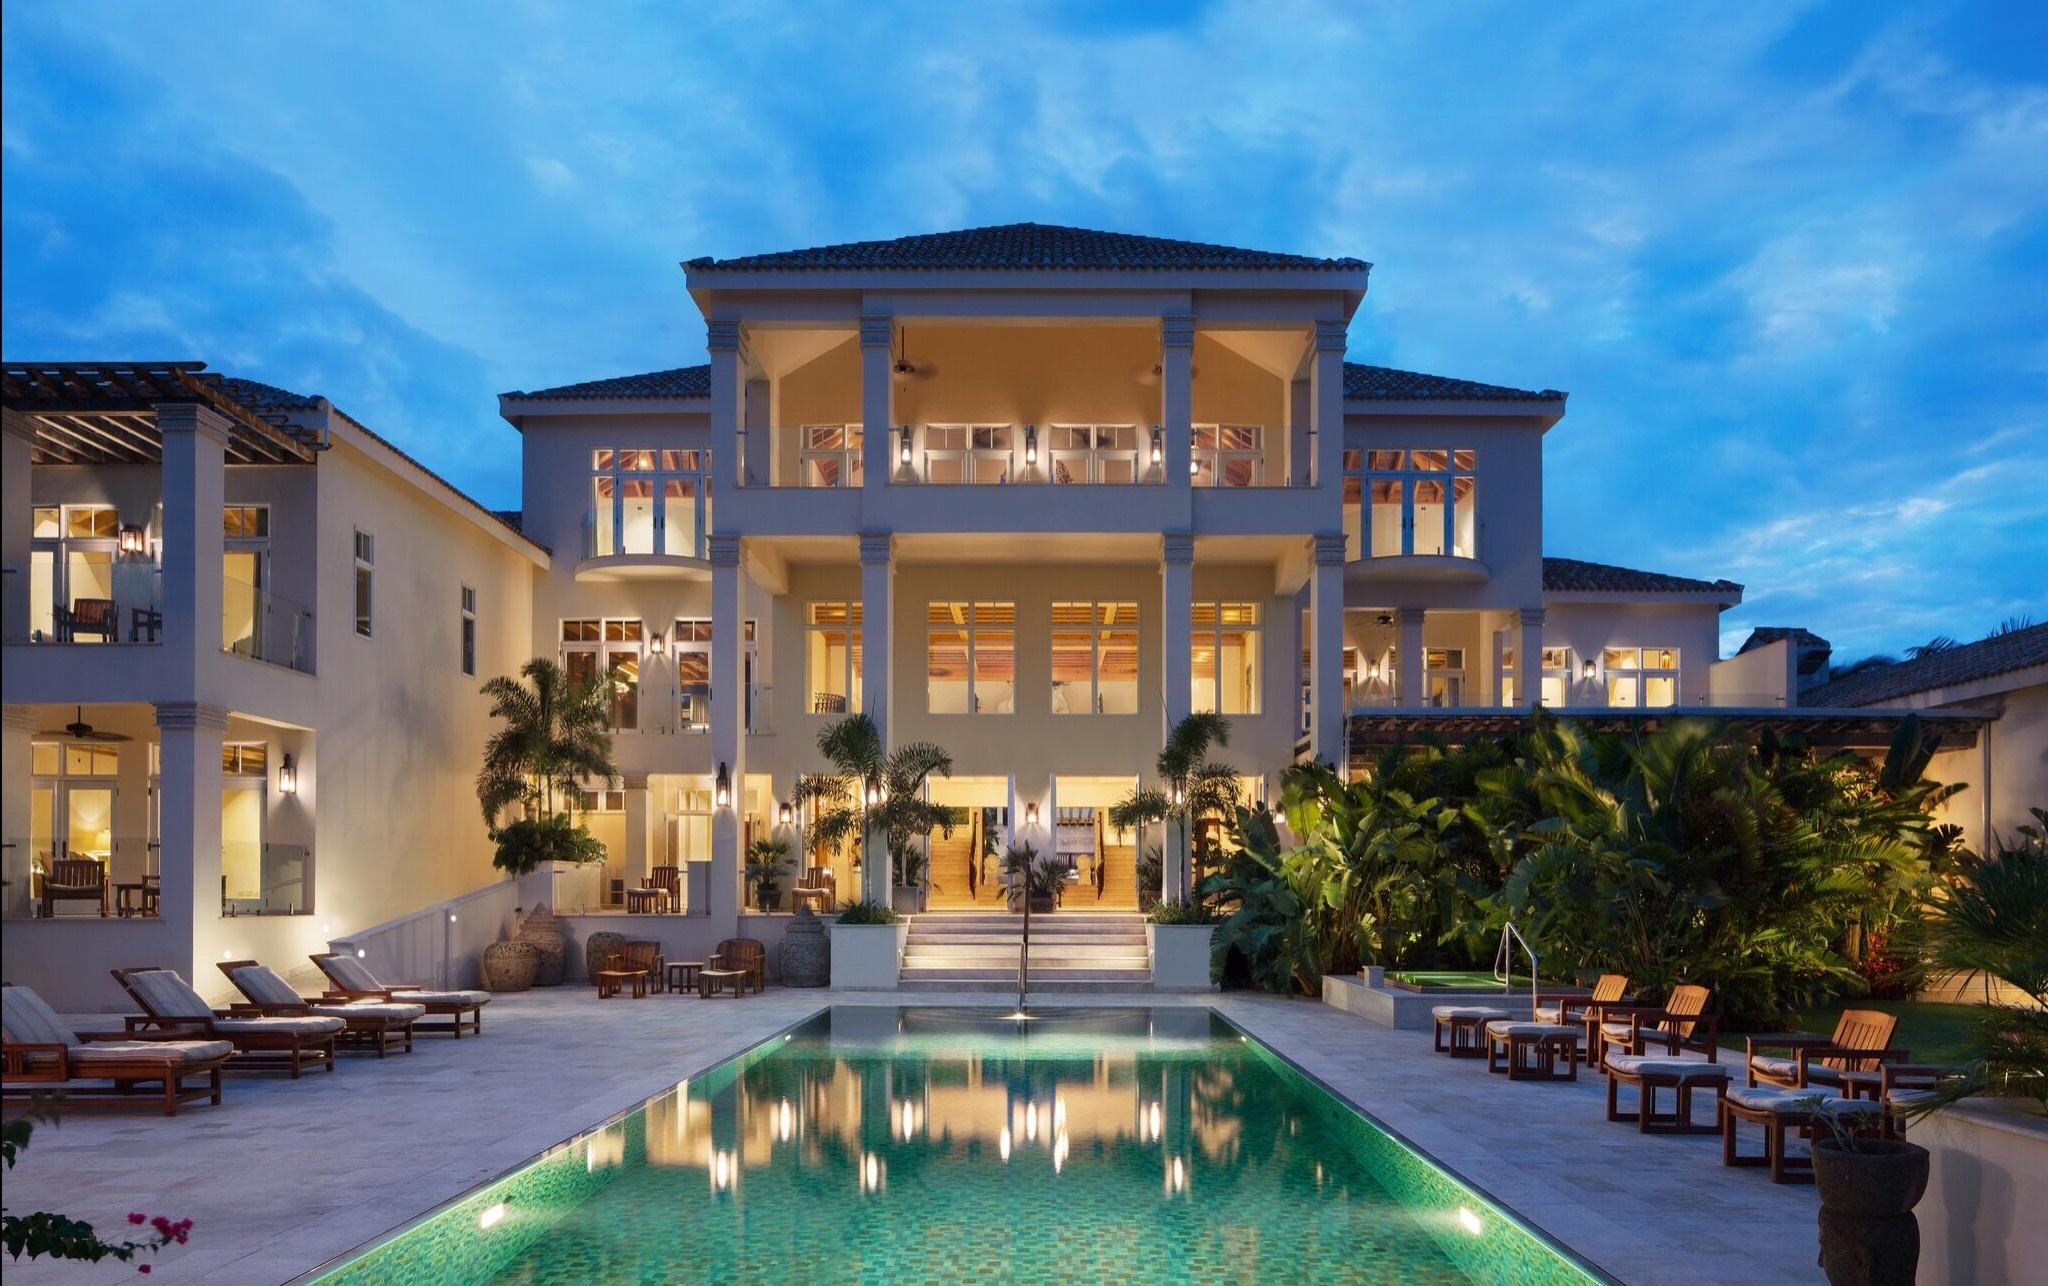 A tropical grand mansion in Anguilla, British West Indies